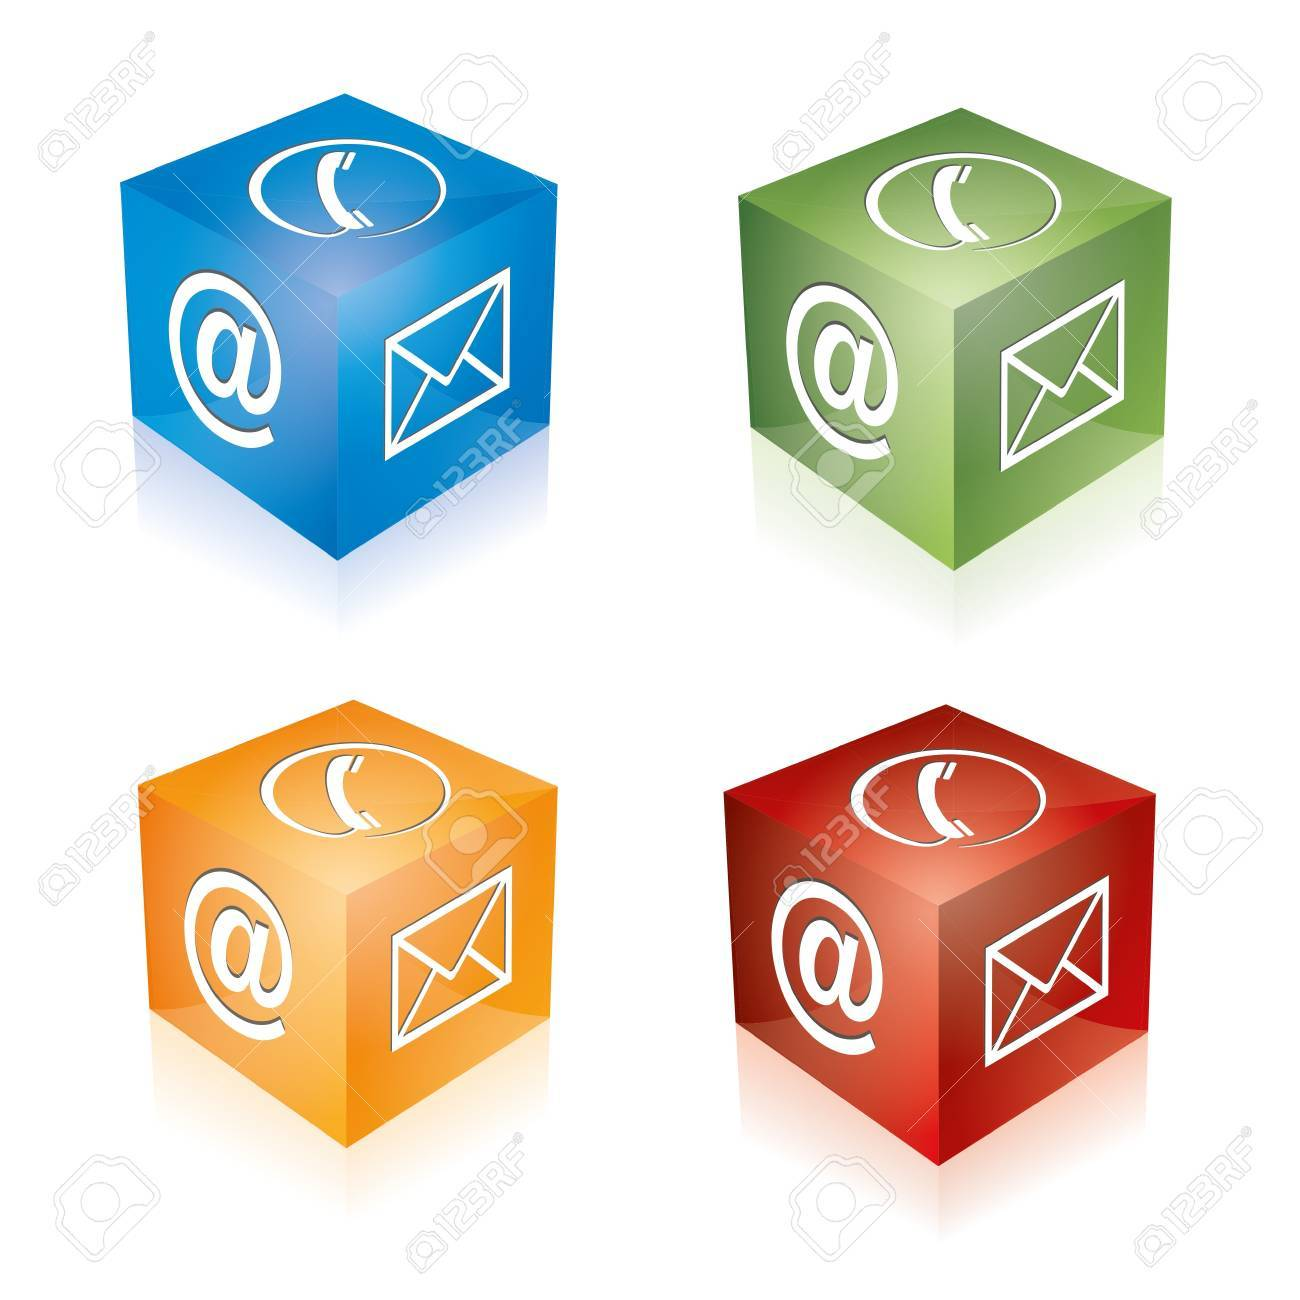 Contact cube phone at email e-mail hotline kontaktfomular callcenter call pictogram sign symbol cube set Stock Vector - 14757935